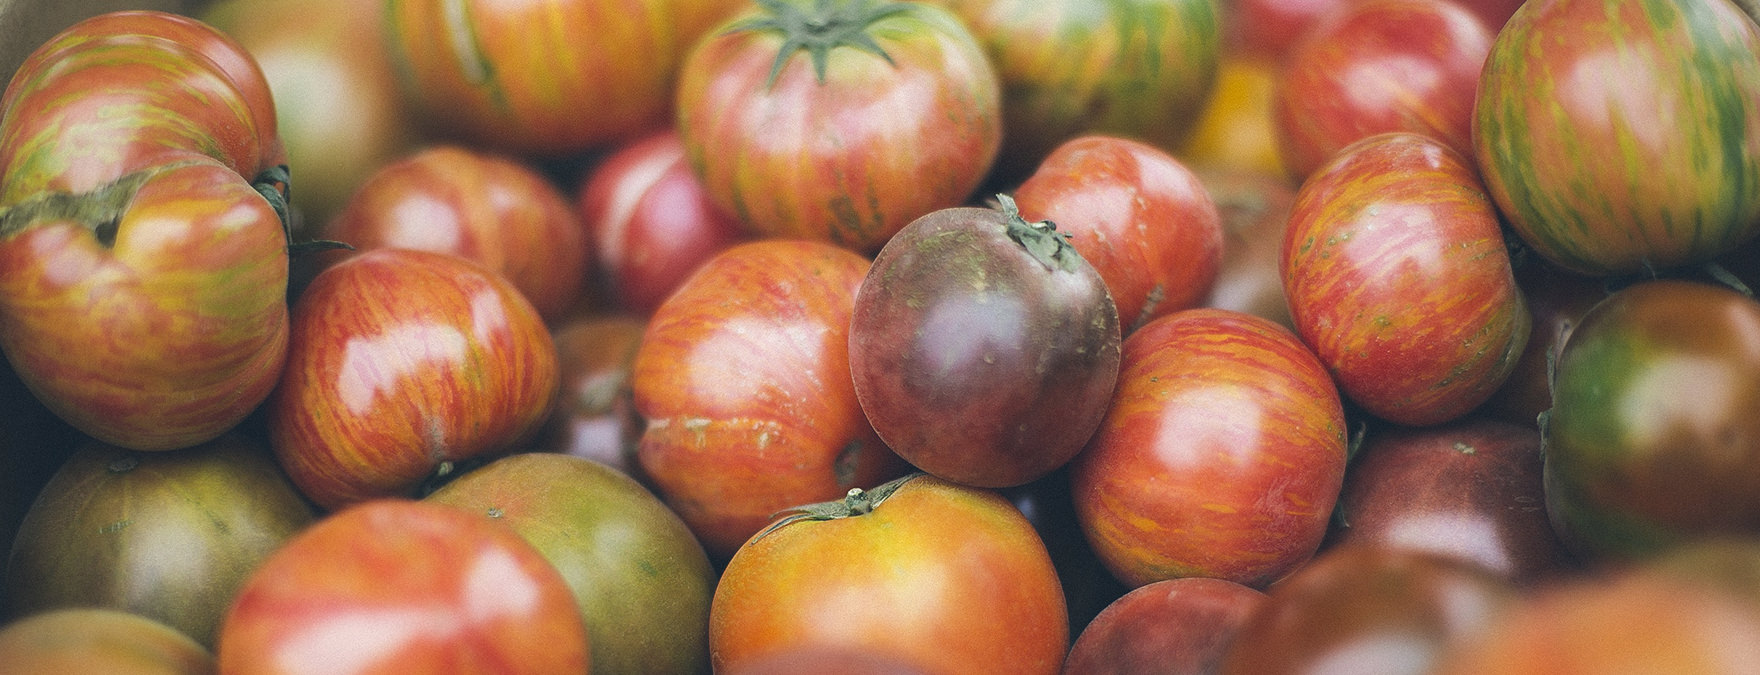 What-is-your tomato-worth